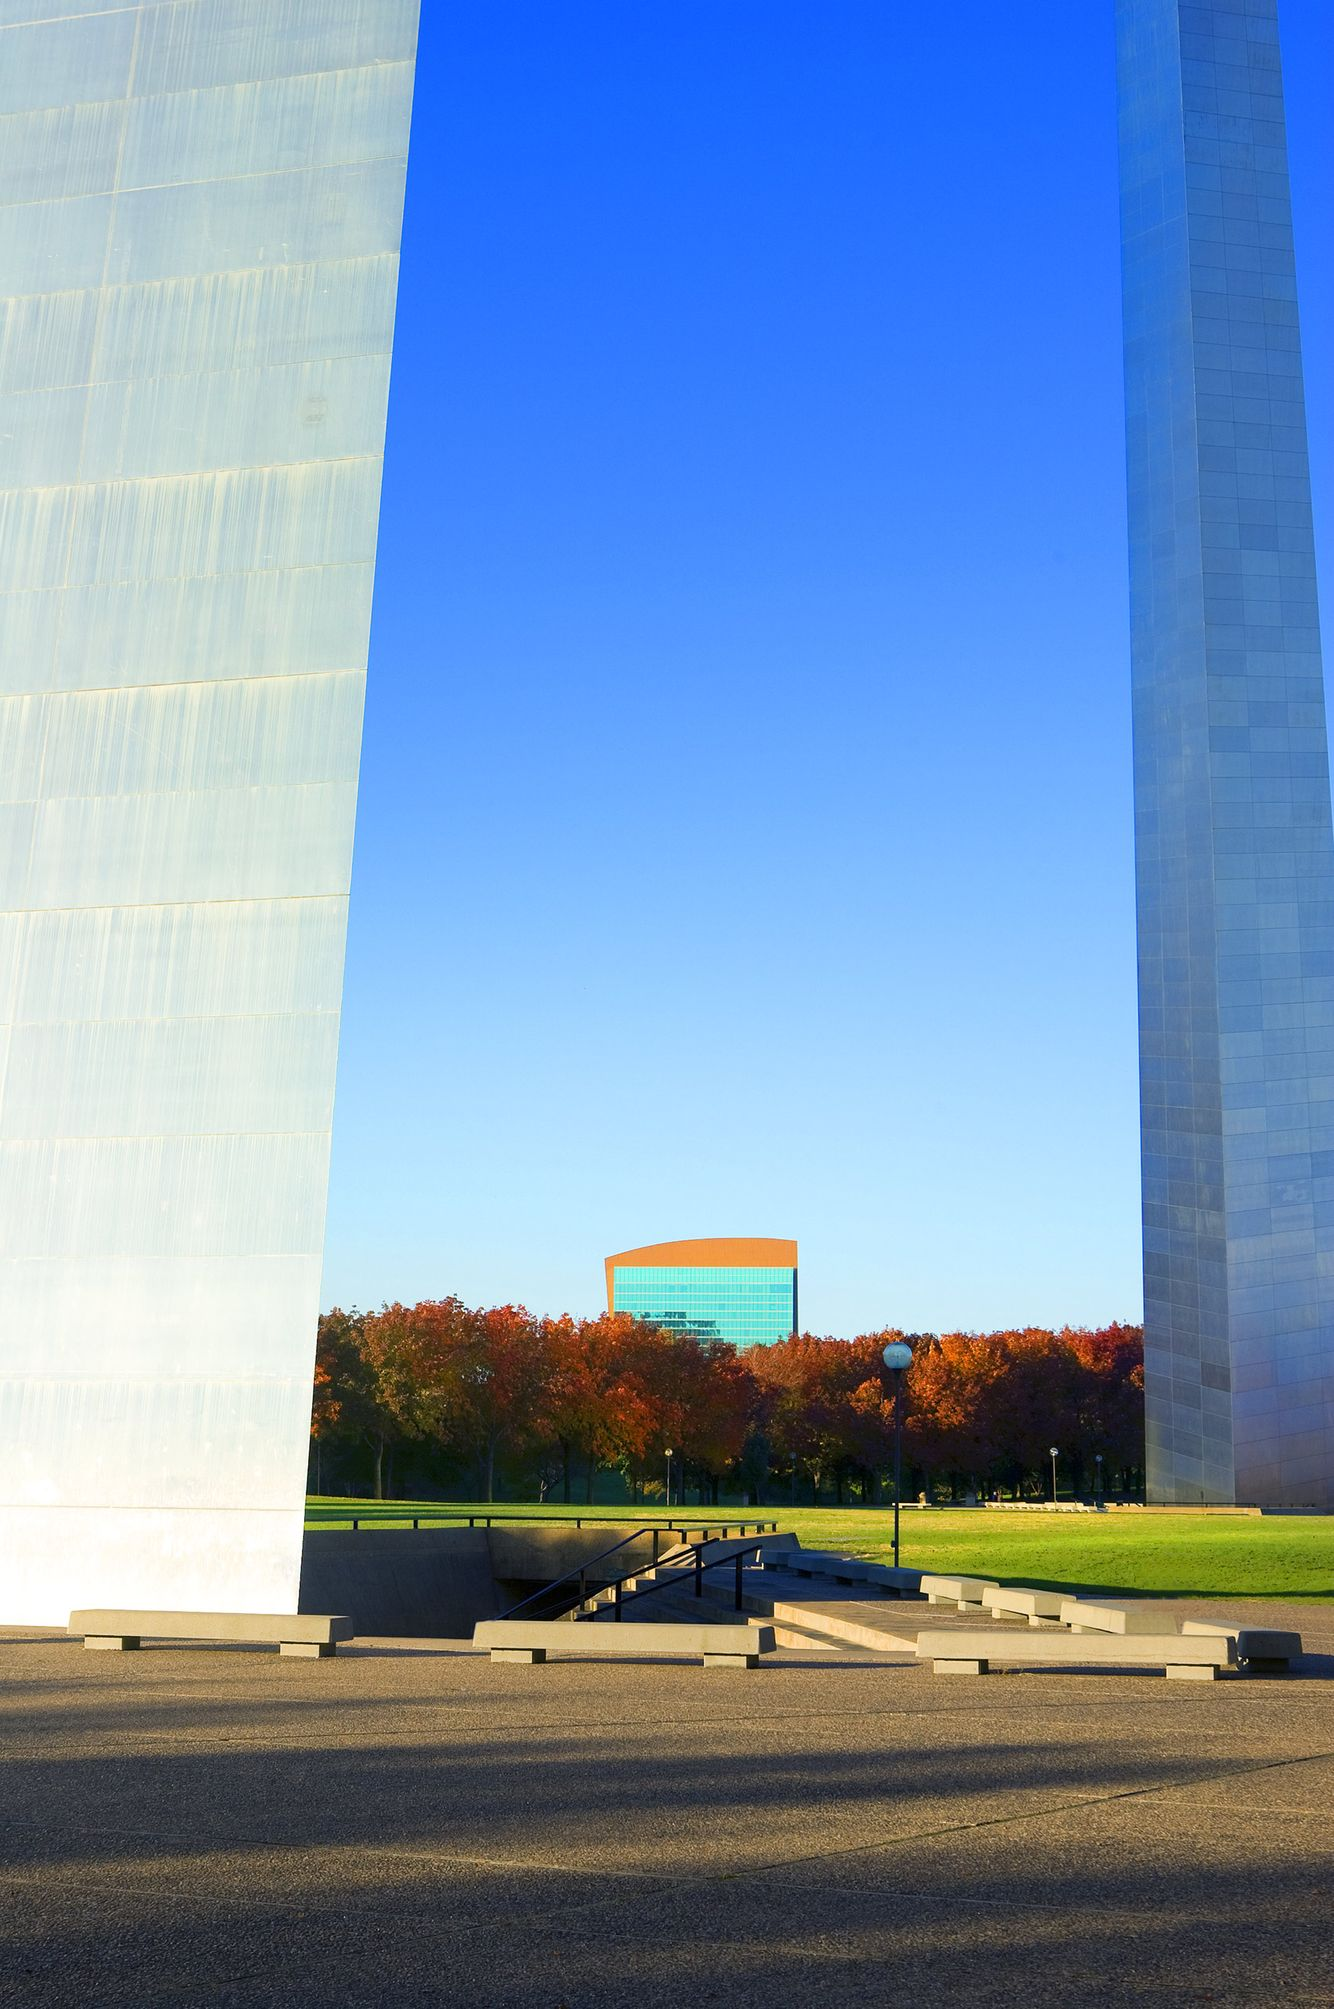 The Four Seasons Hotel and The Gateway Arch in St Louis